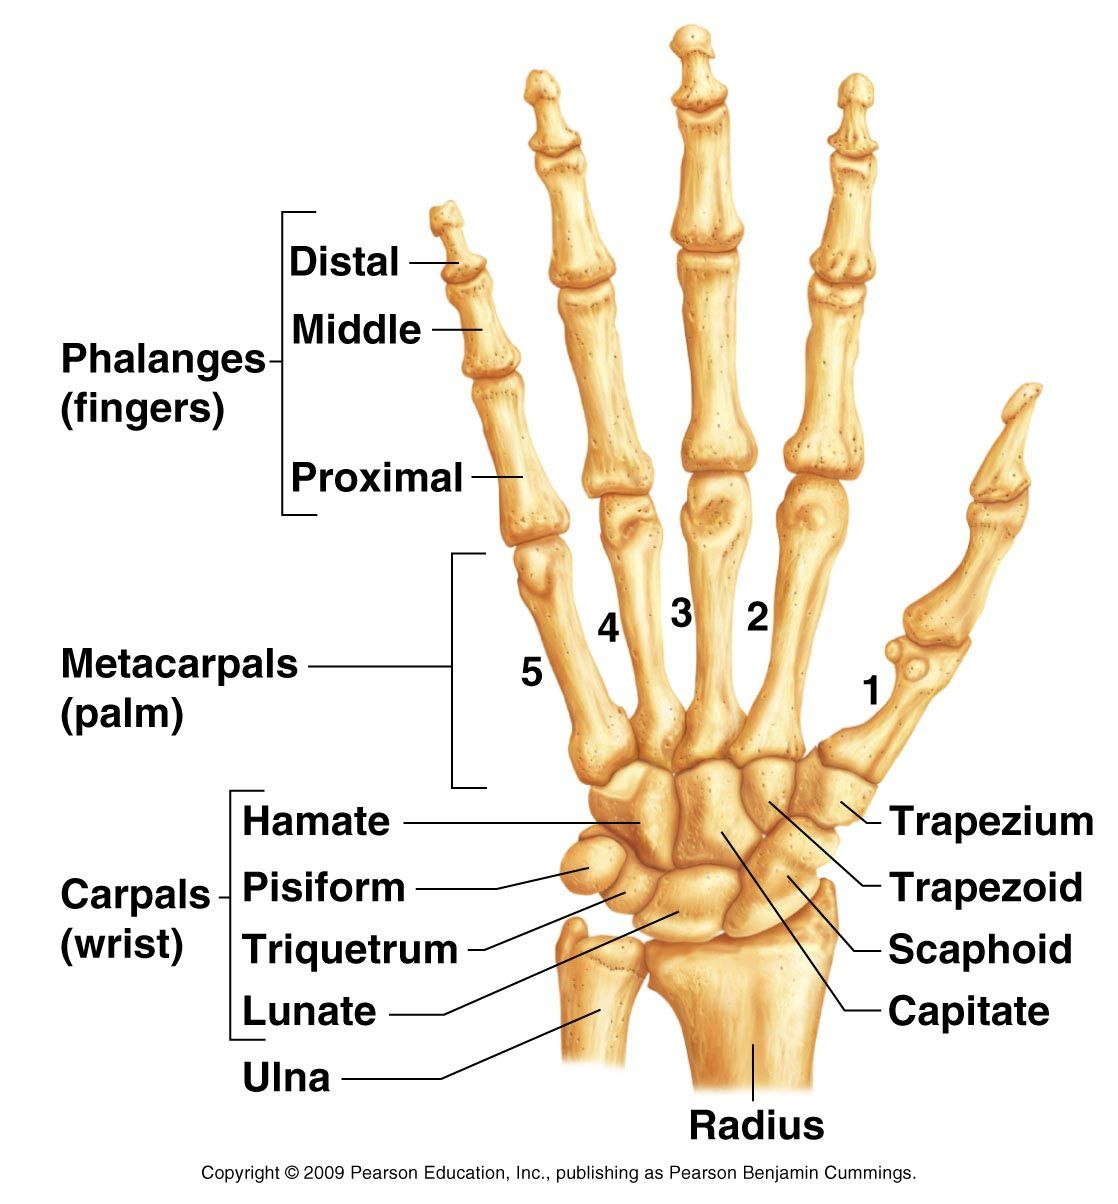 Beaver Skeleton Diagram Headlight Switch Gm Hand And Wrist Bone Structures Anatomy Physiology